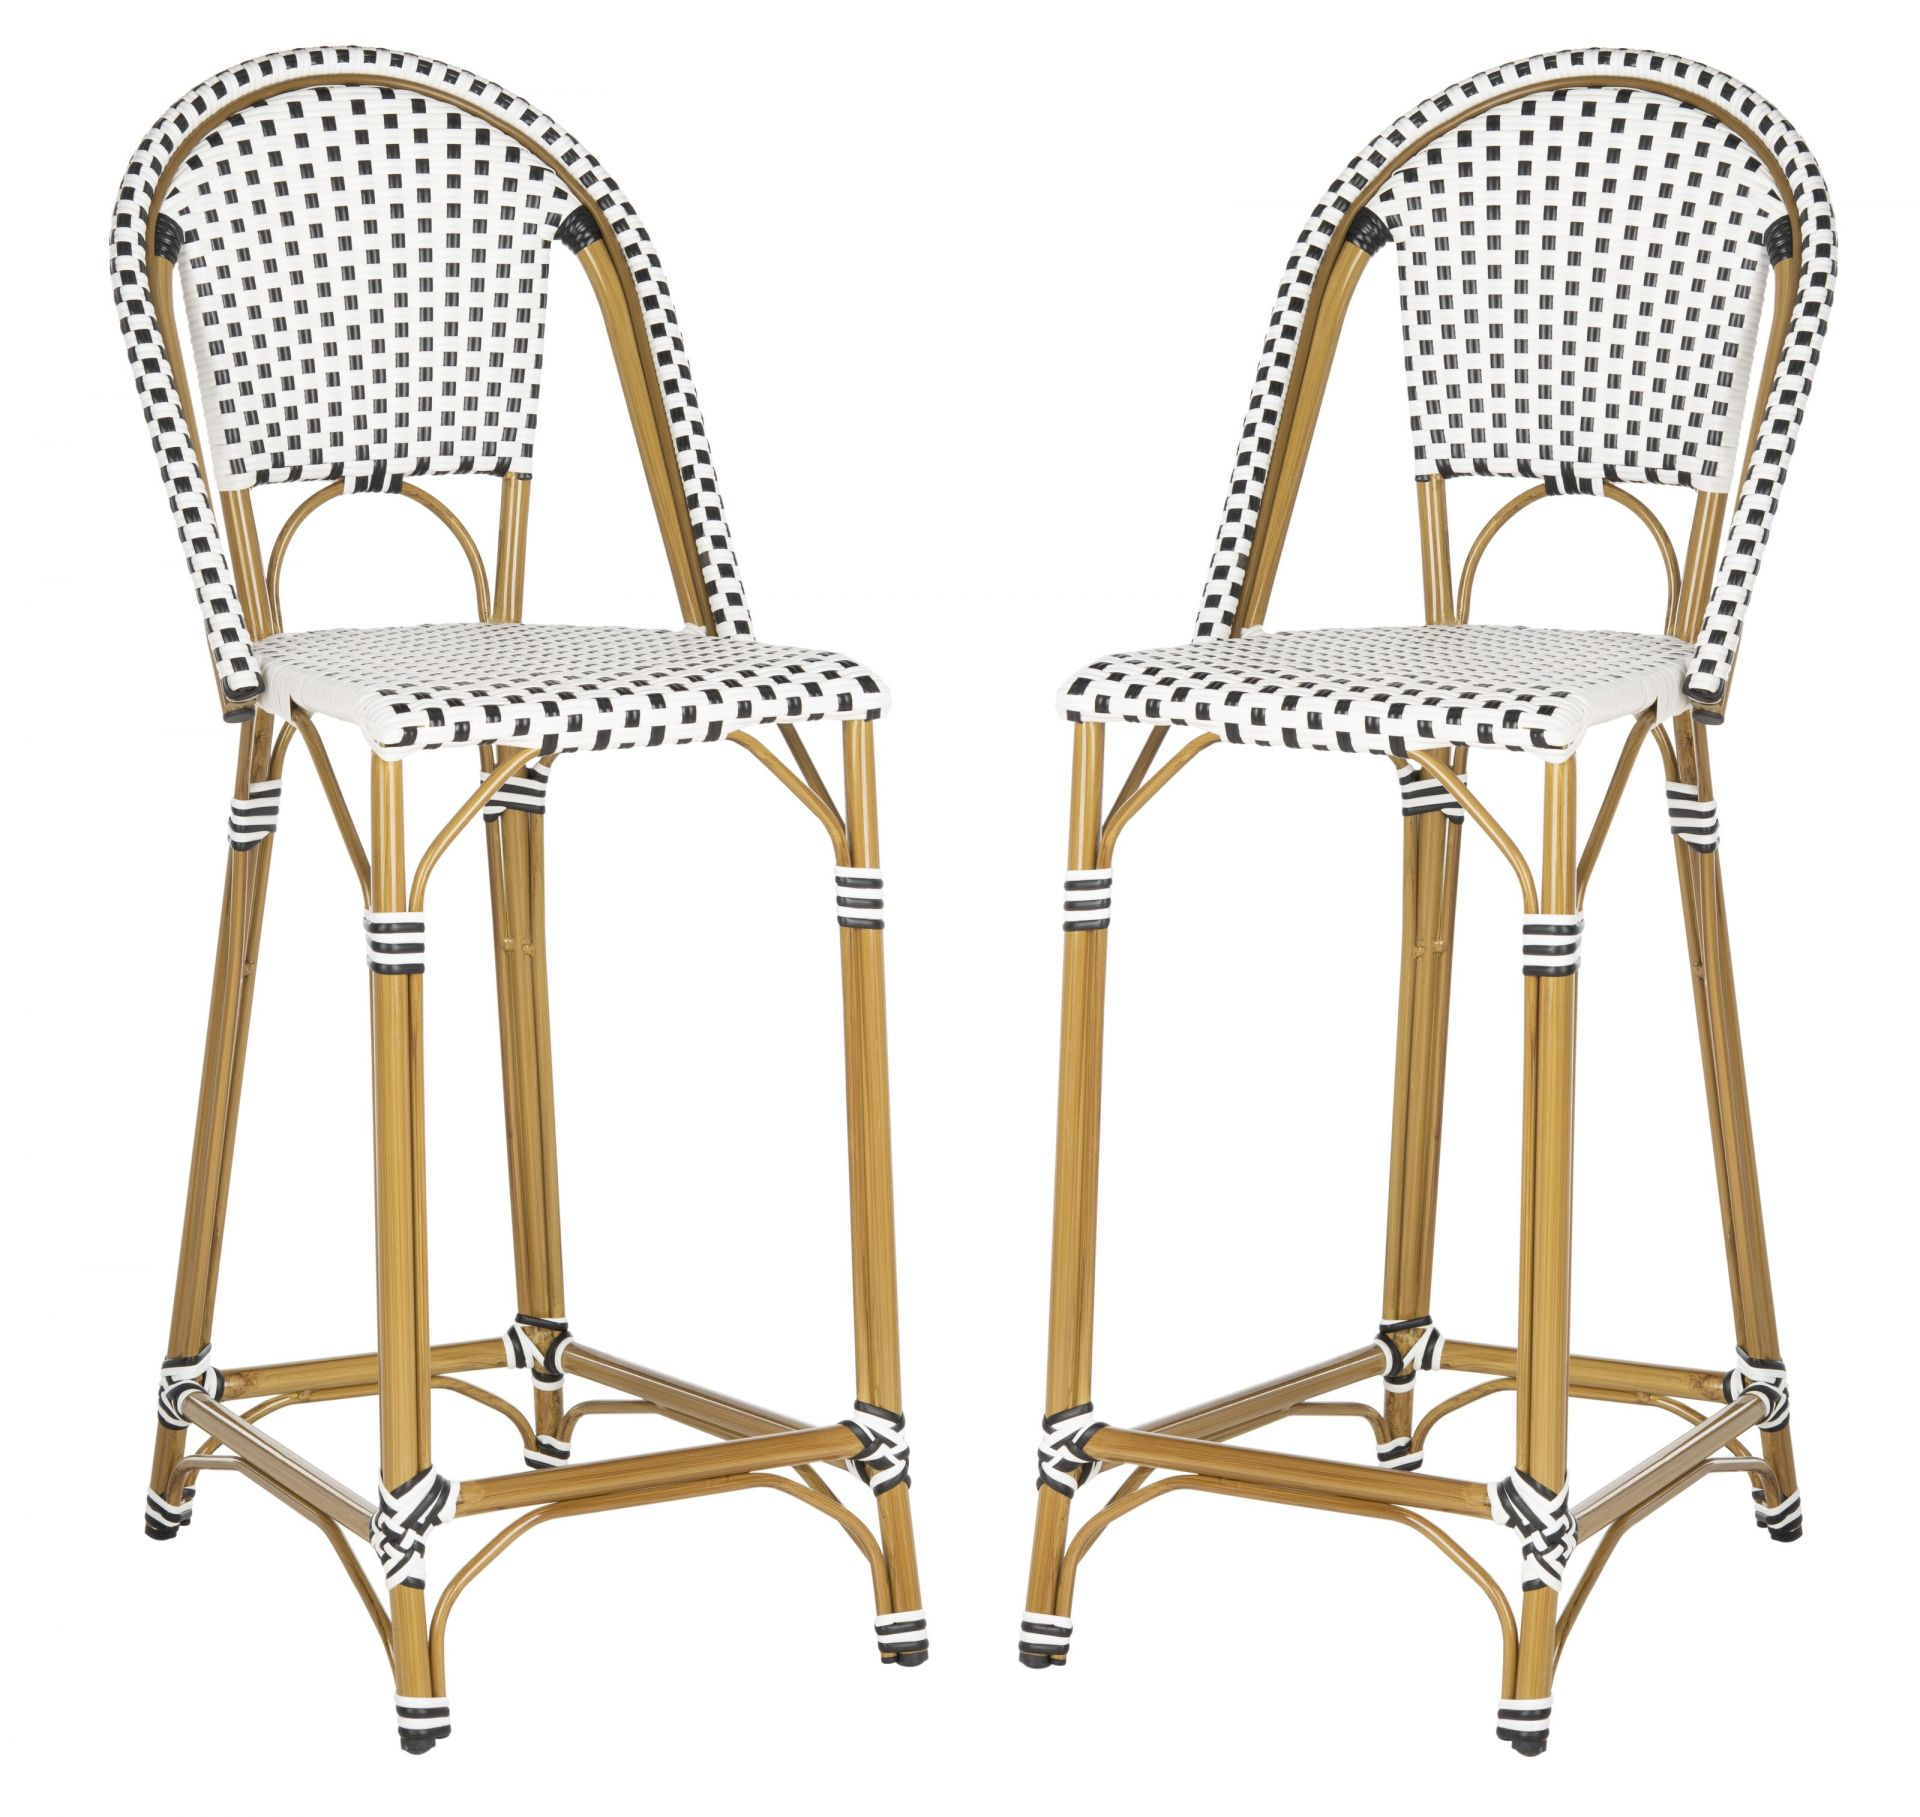 Claireville 30 Patio Bar Stool, Serena & Lily Riviera Side Chair Dupes,Serena & Lily Riviera Counter Stool Dupes, Serena & Lily dupes, Serena & Lily look for less, rattan dining chairs, bistro dining chairs, rattan counter stools, bistro counter stools, interior designs, diningchair ideas, counterstool ideas, on trend dining chairs, on trend counter stools, kitchen ideas, kitchen designs, dining room ideas, Red Soles and Red Wine, Jennifer Worman